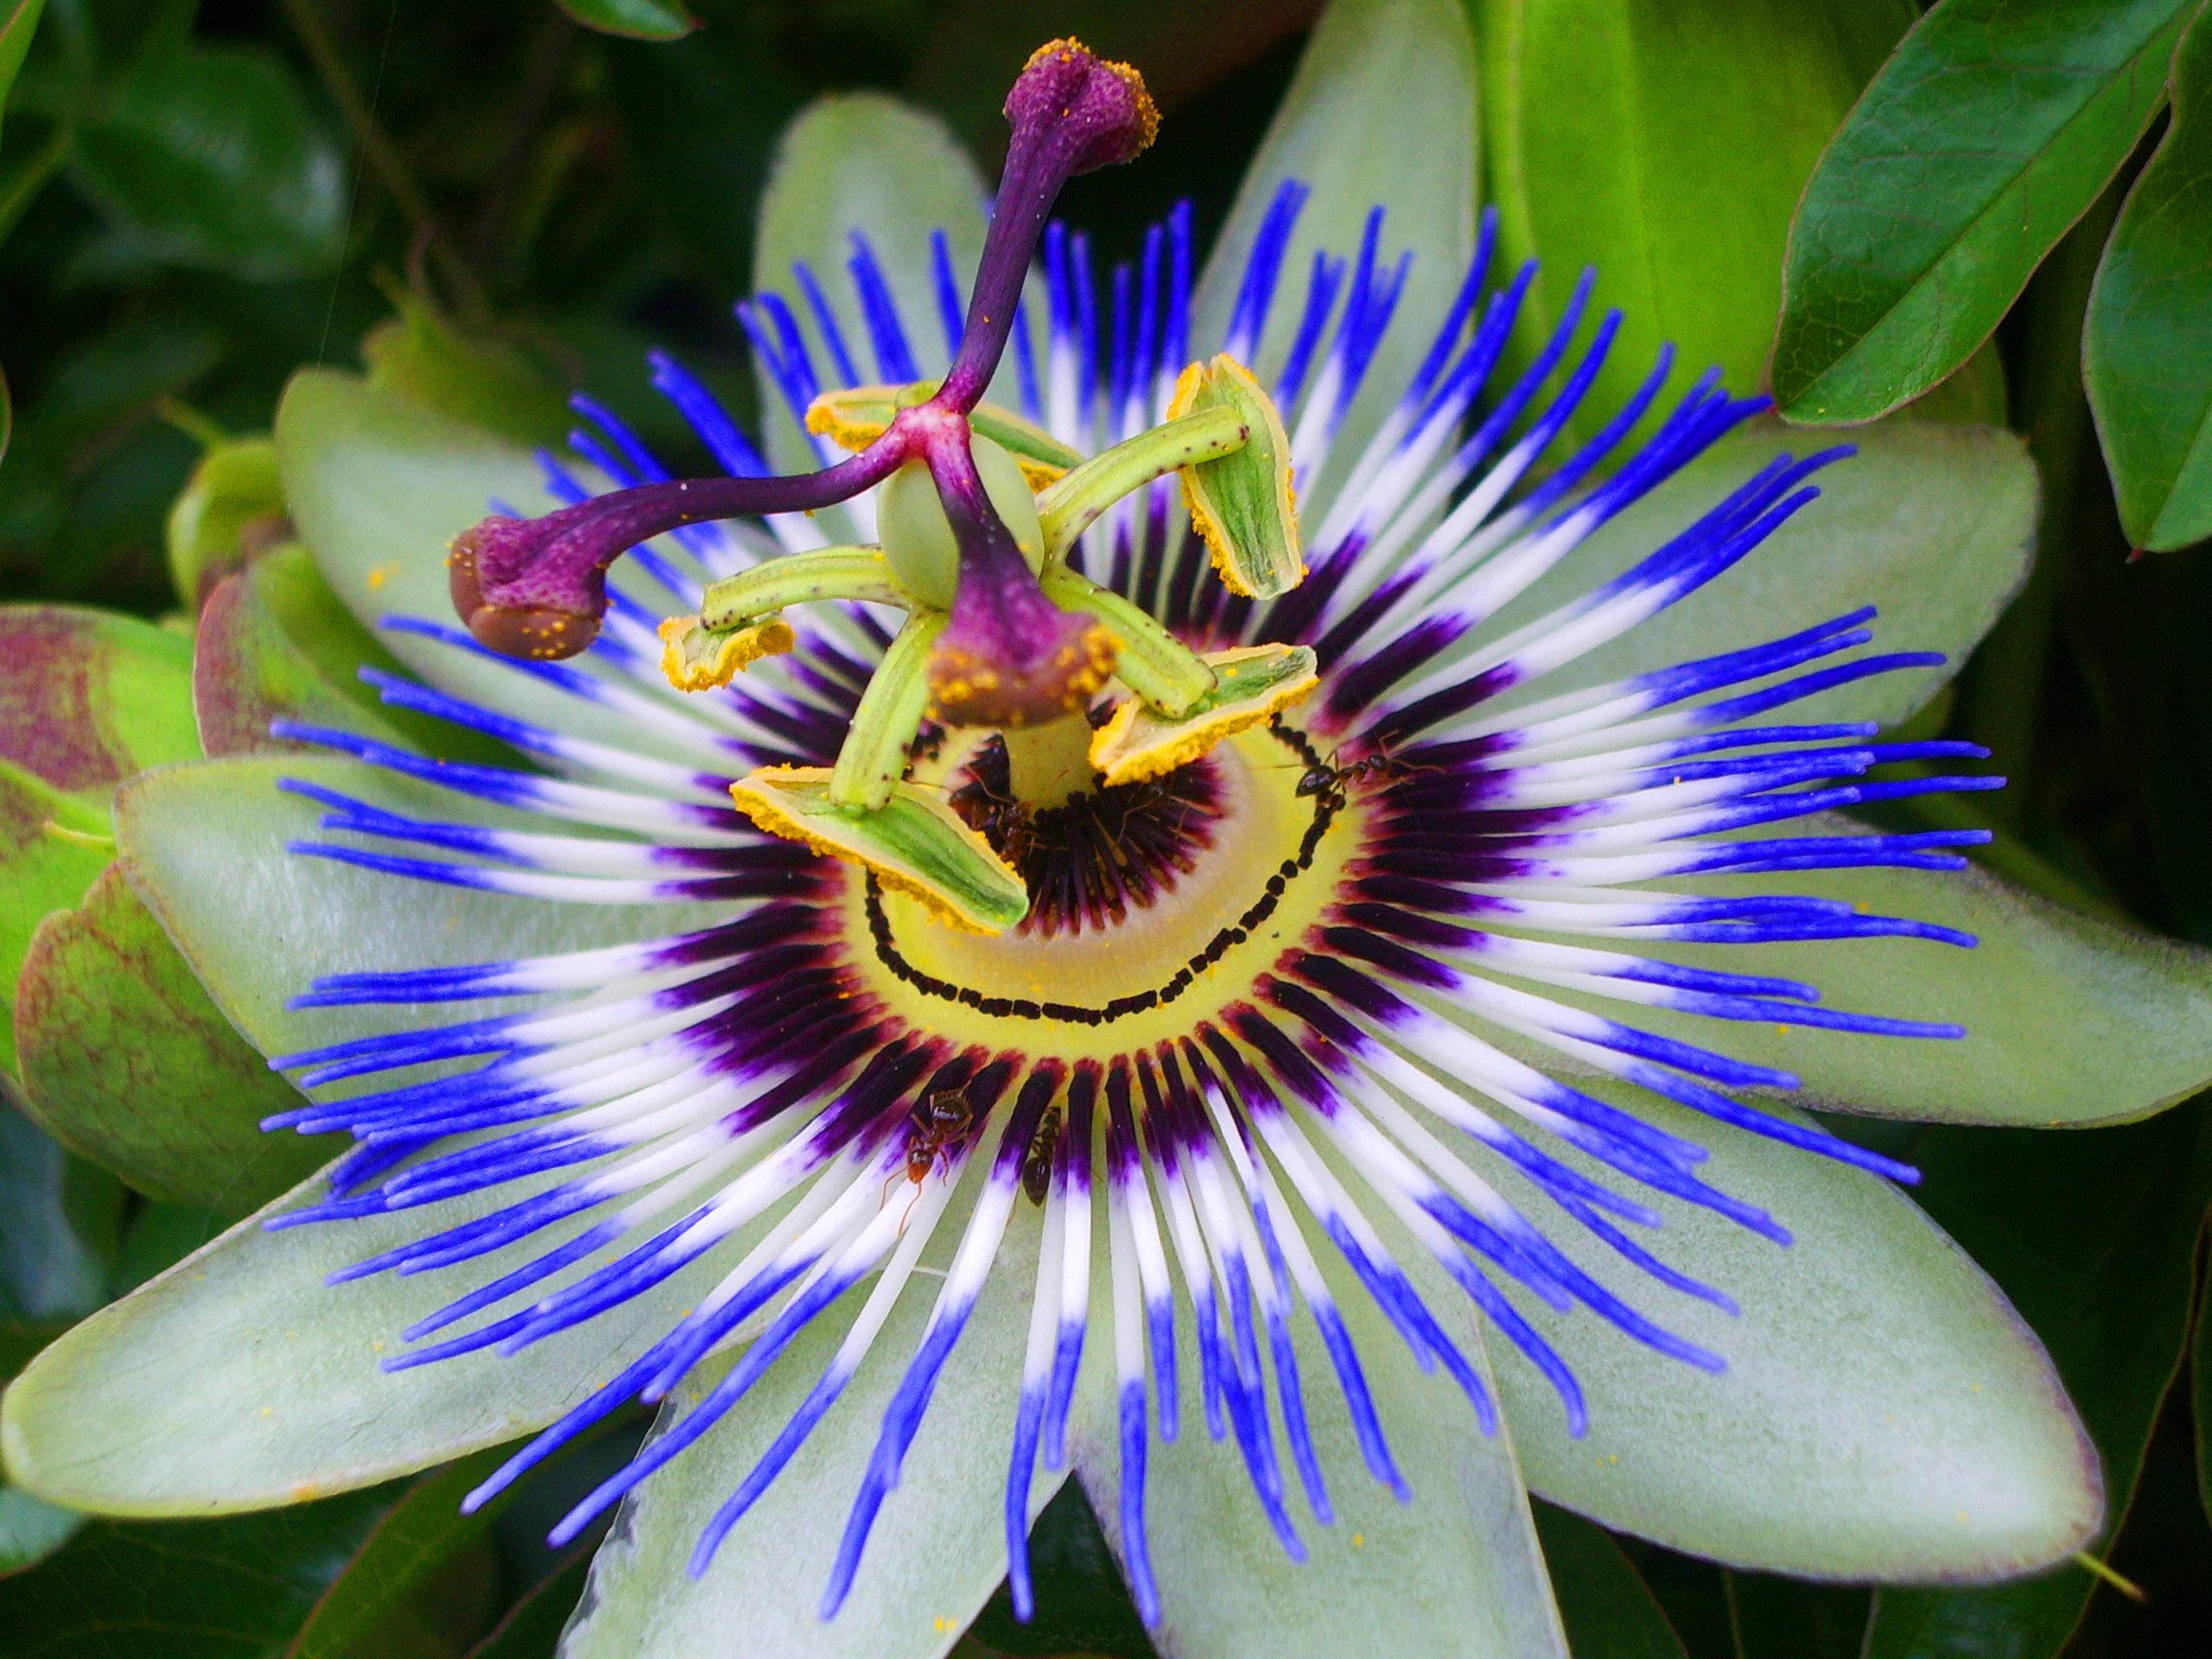 Passion fruit flower photo Black Pictures by Darryl Pinckney The New York Review of Books